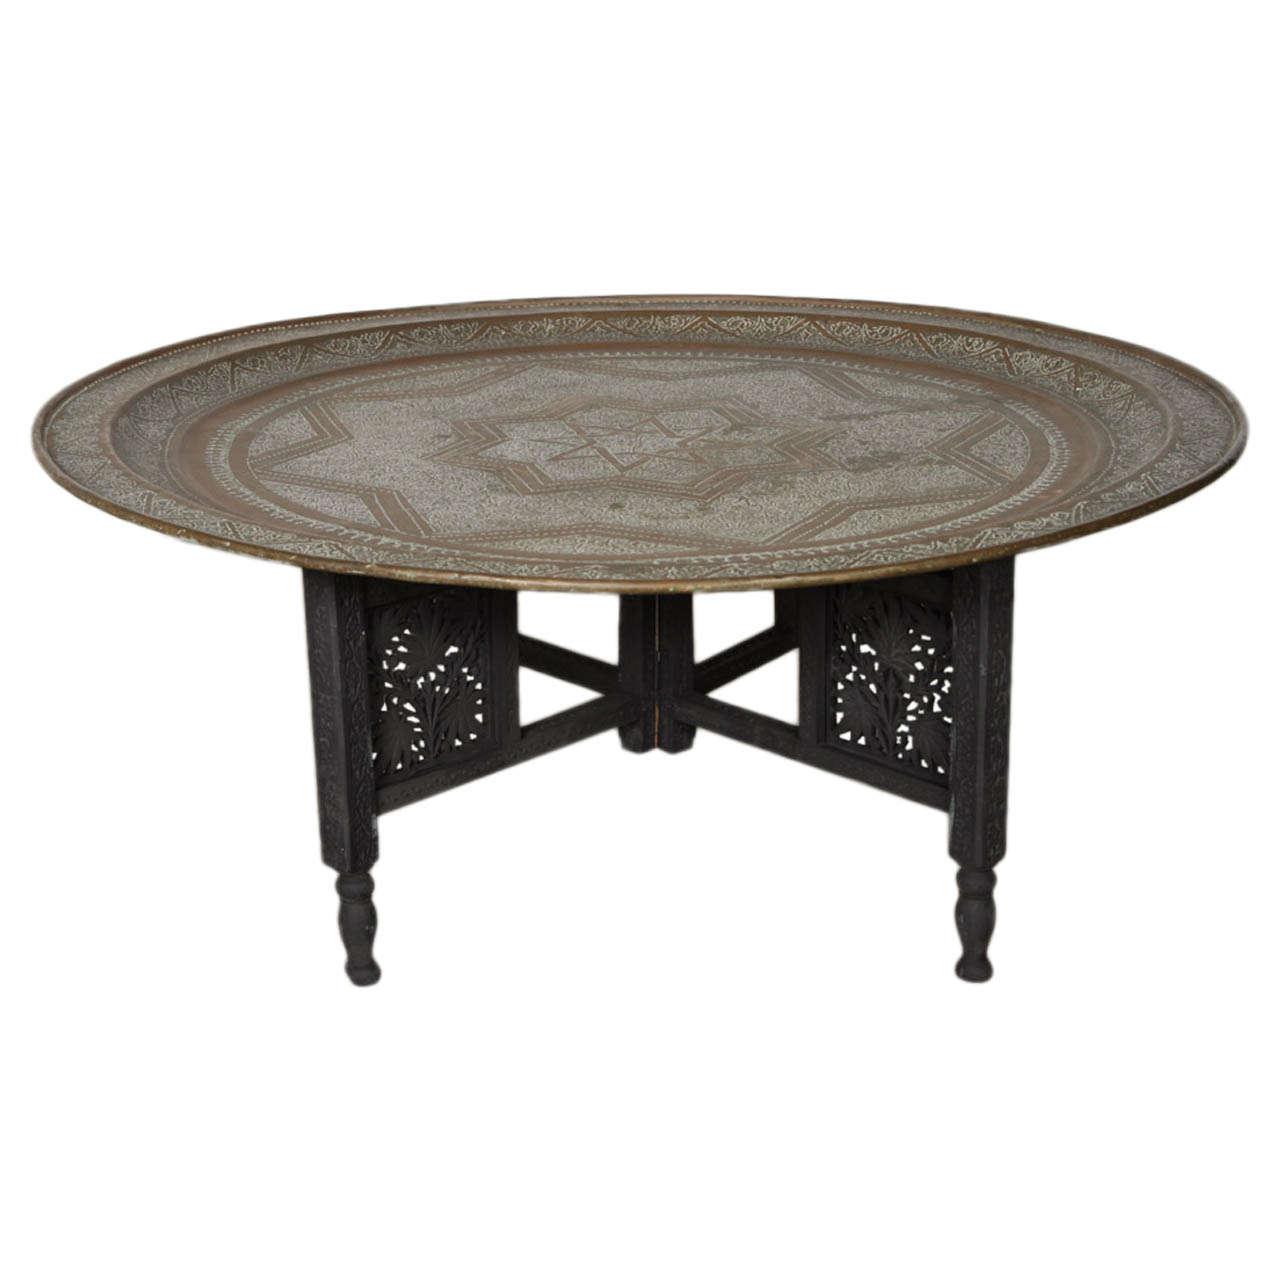 Wonderful Moroccan Round Brass Tray Coffee Table 1